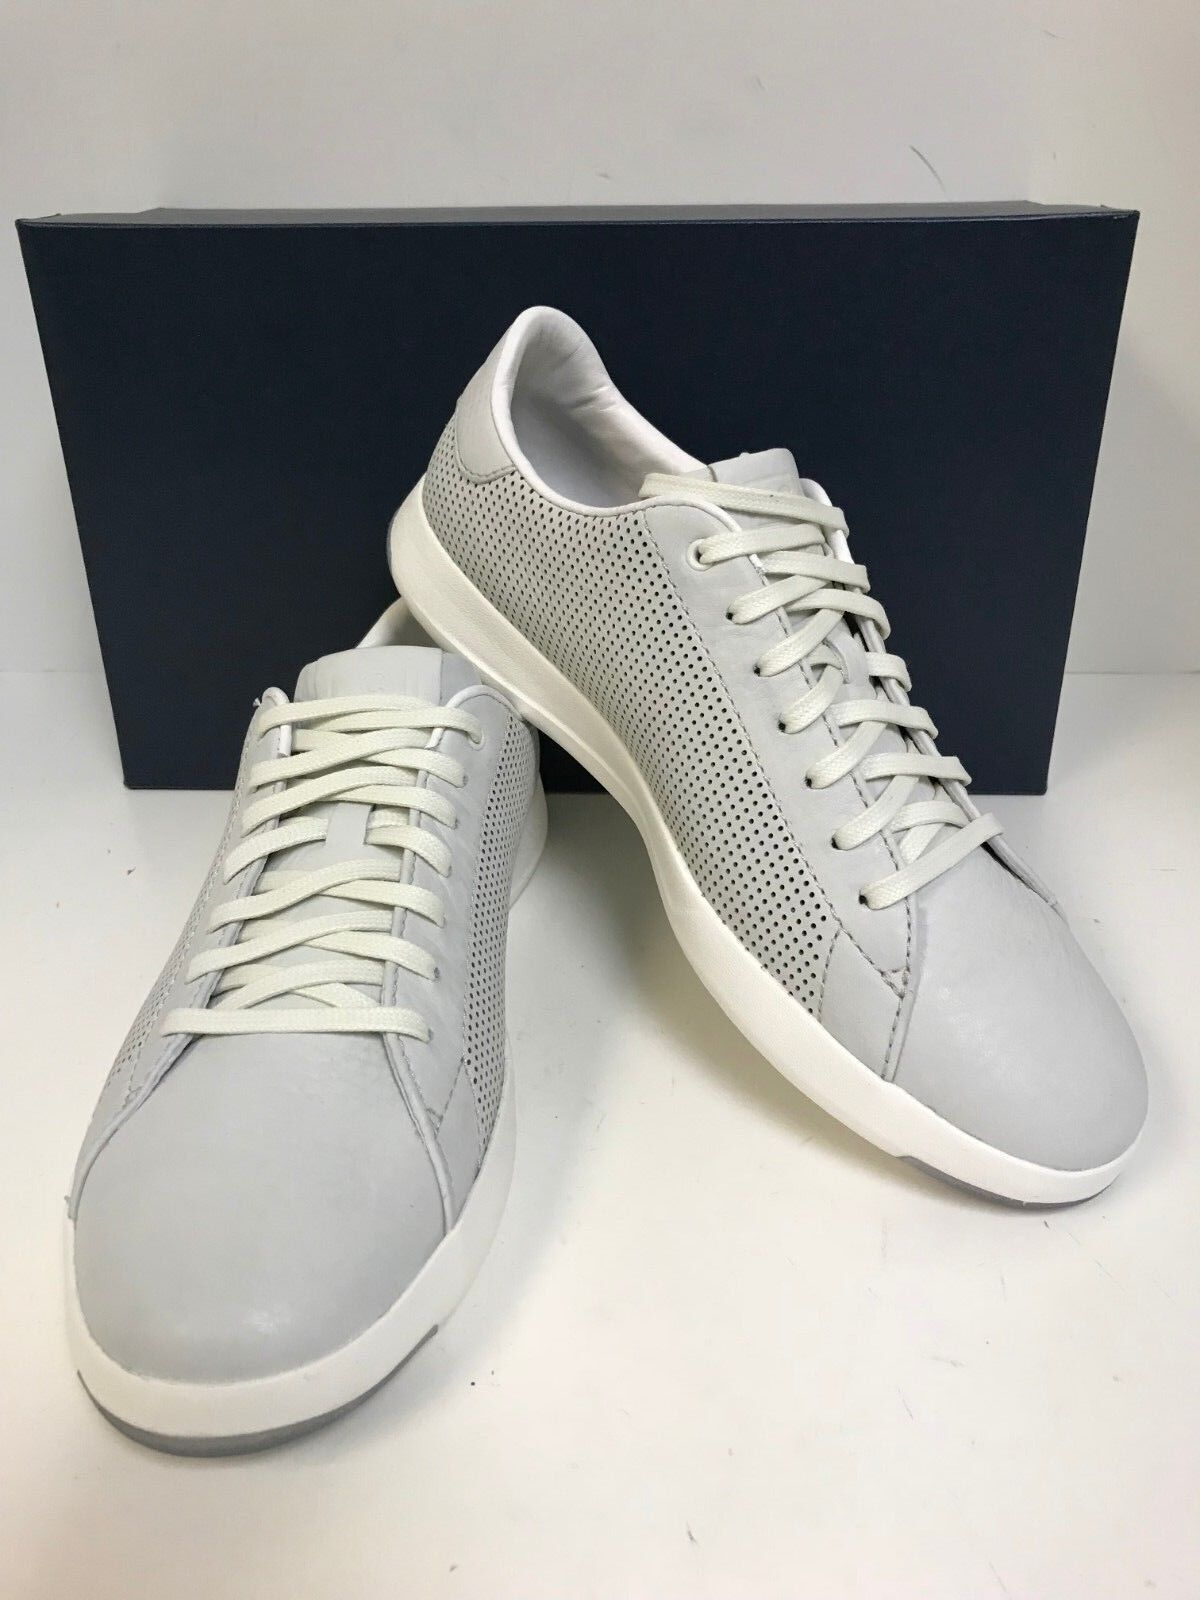 Cole Haan Men's Grandpro Tennis Chalk Tumbled Leather Laceup Casual Sneakers